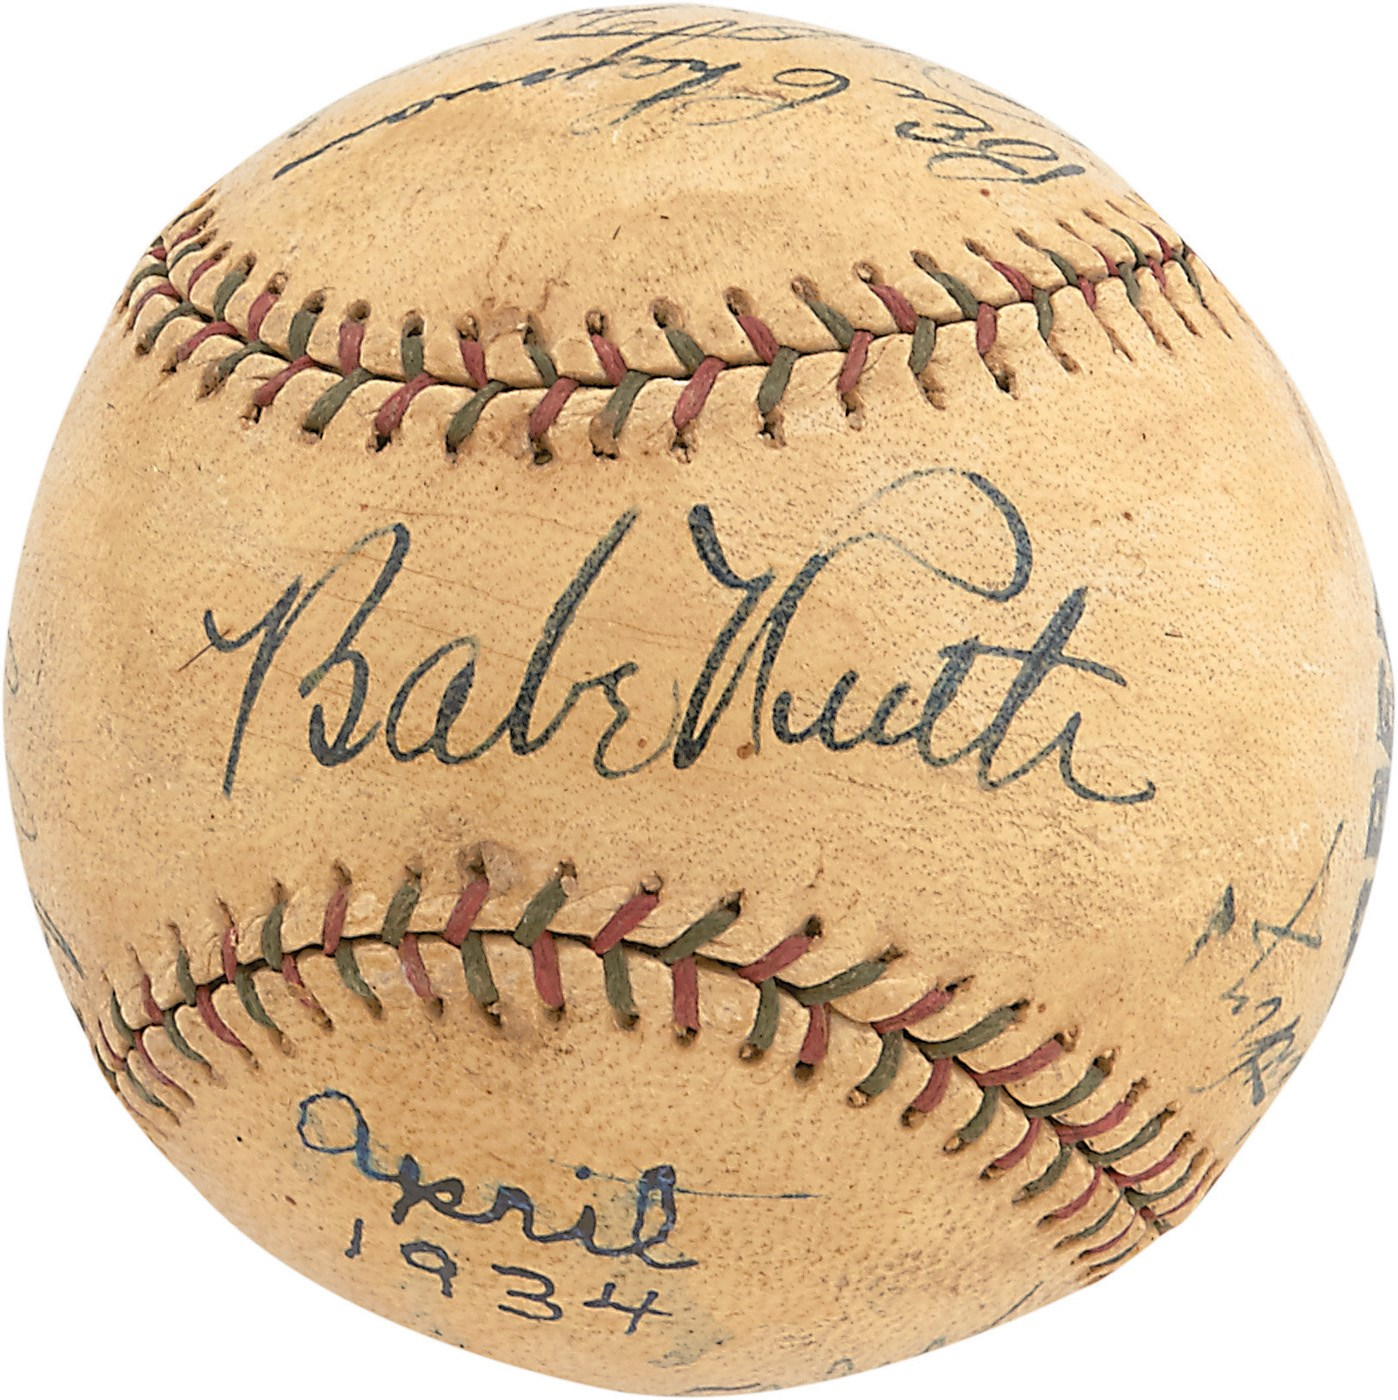 1934 New York Yankees Team-Signed Baseball w/High Grade Babe Ruth & Lou Gehrig (PSA)